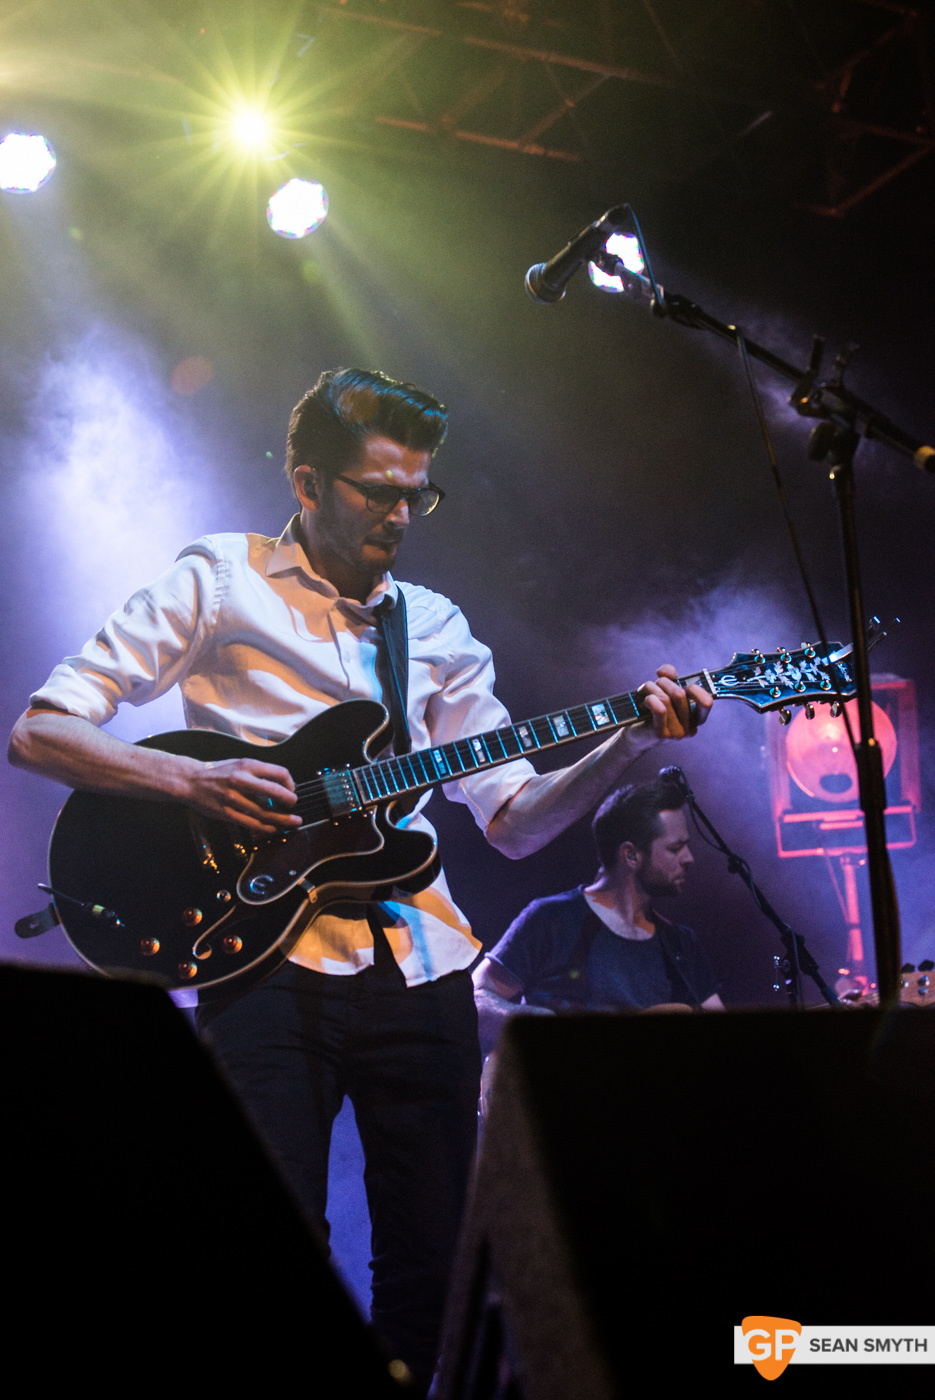 hudson-taylor-at-the-olympia-theatre-26-2-15-by-sean-smyth-22-of-26_16134448084_o